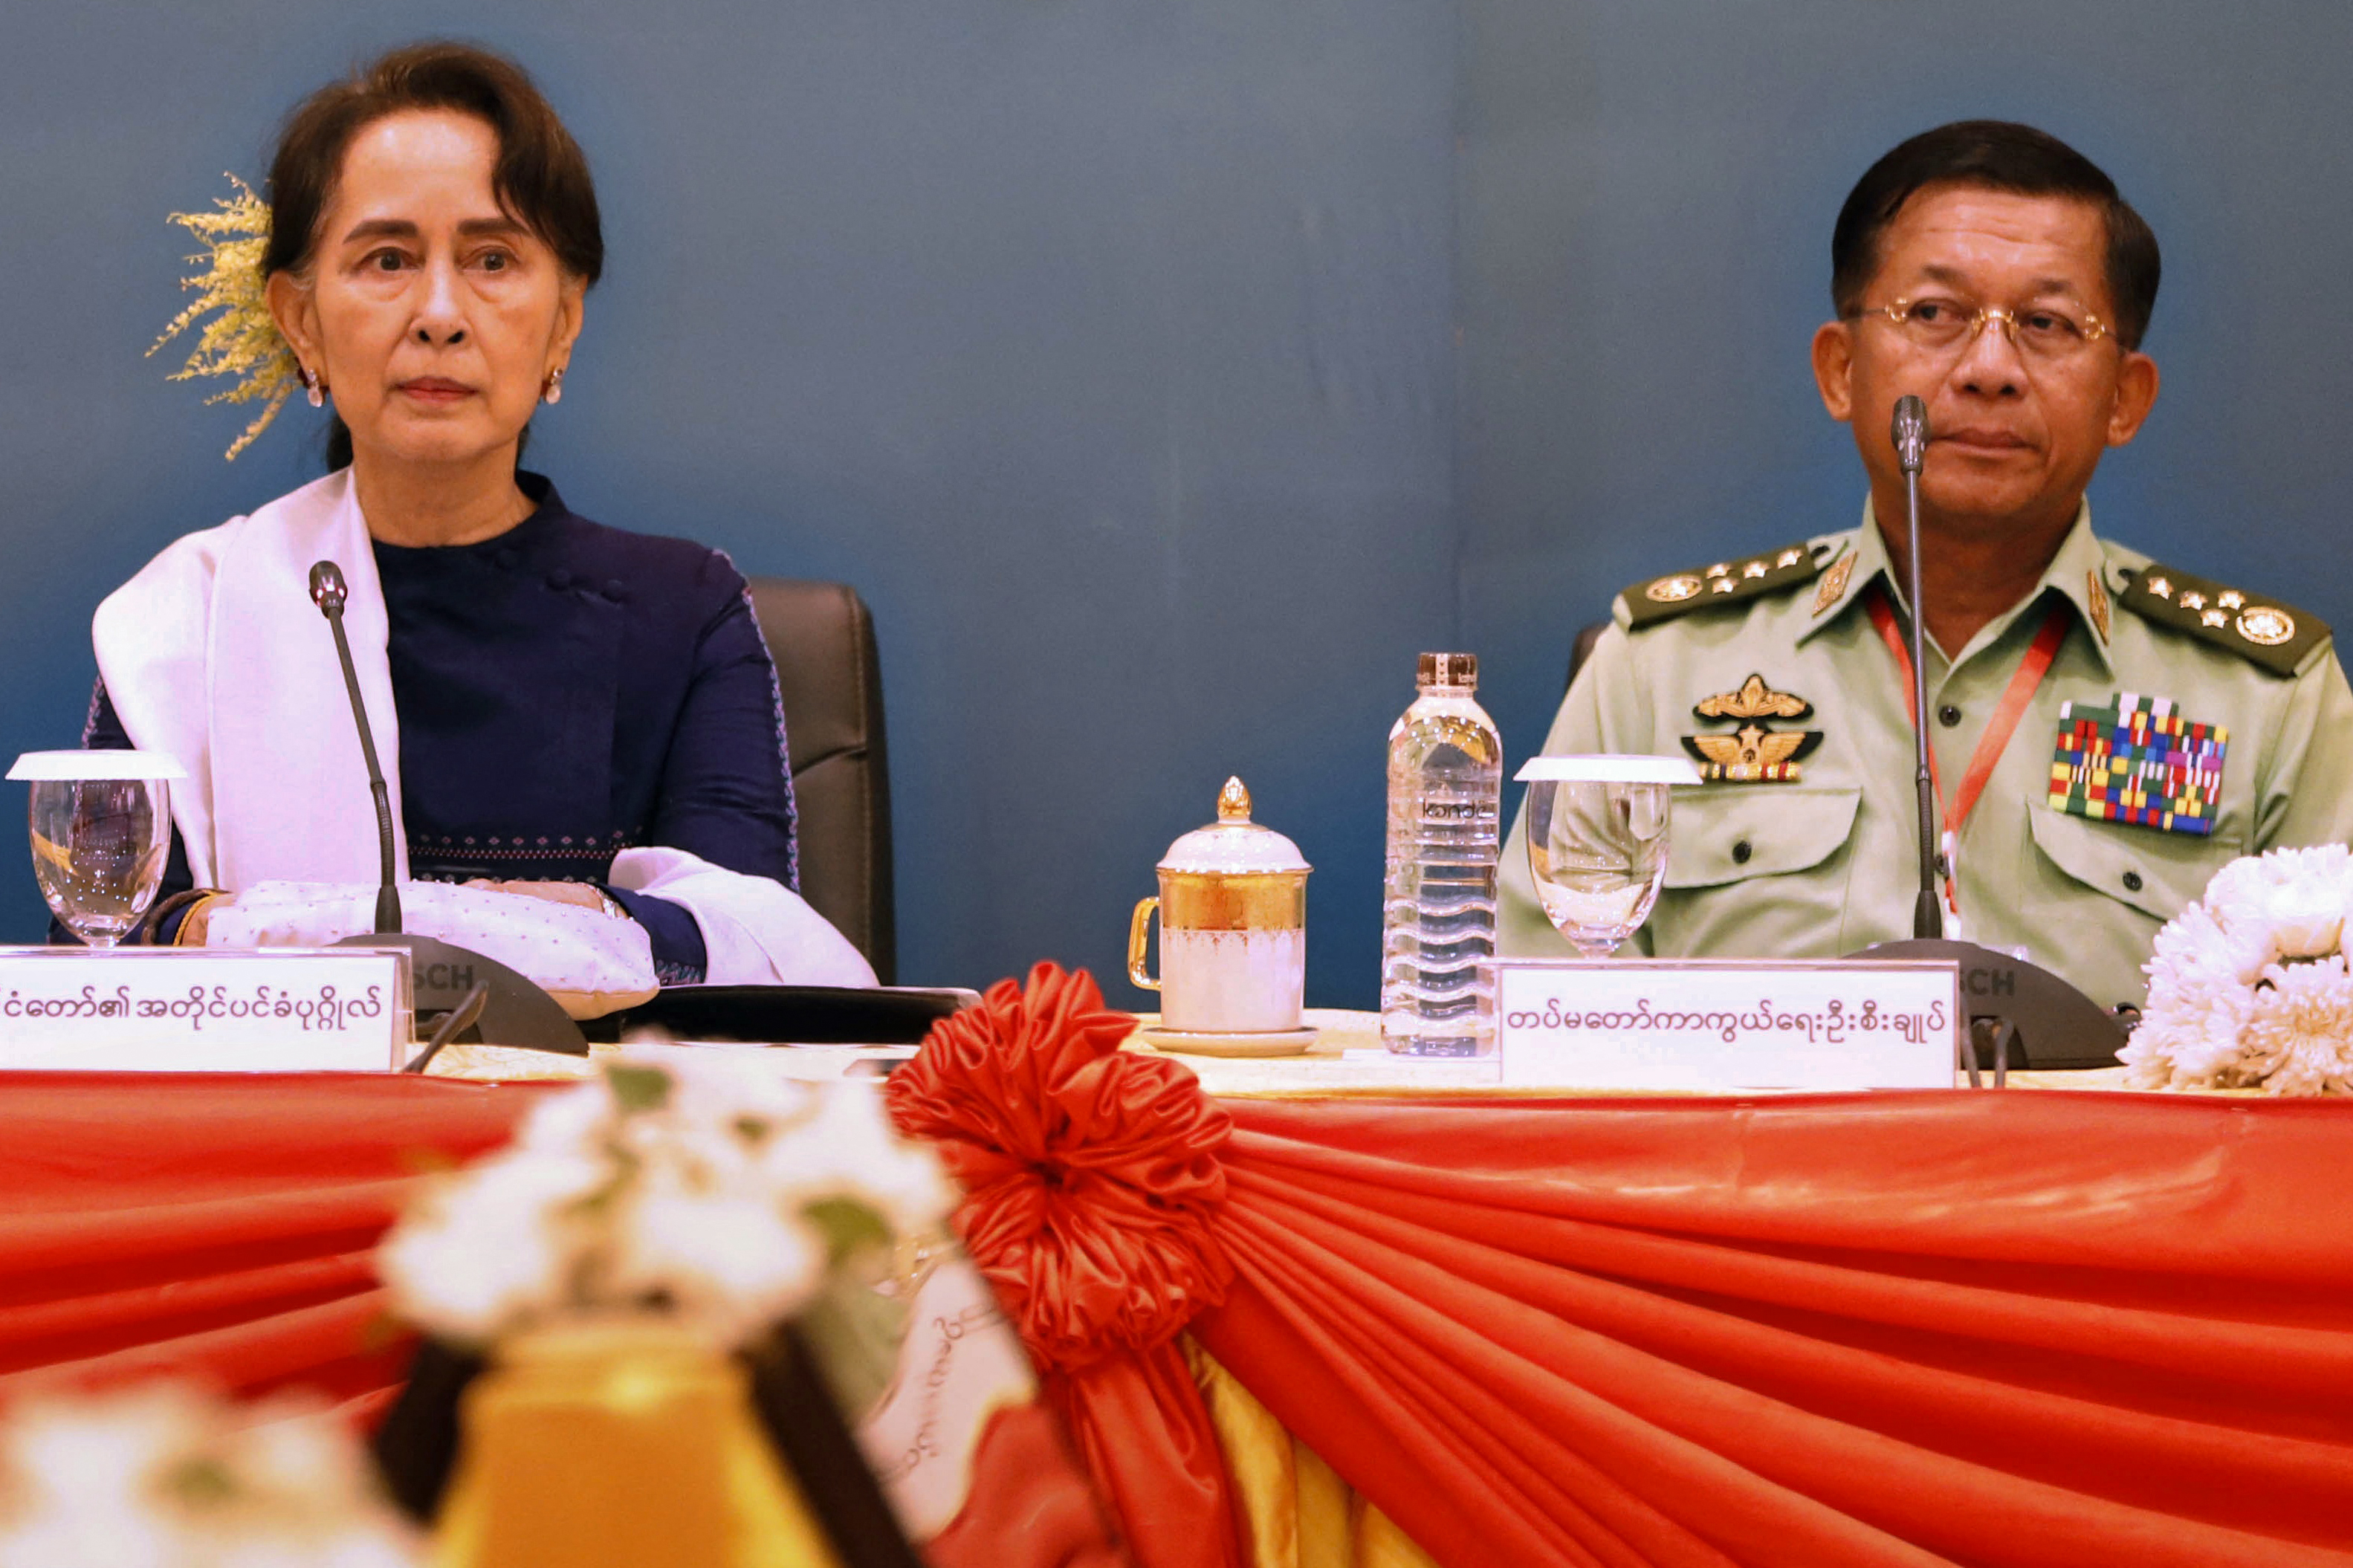 Myanmar to have friendly cooperation with all countries: Commander-in-Chief